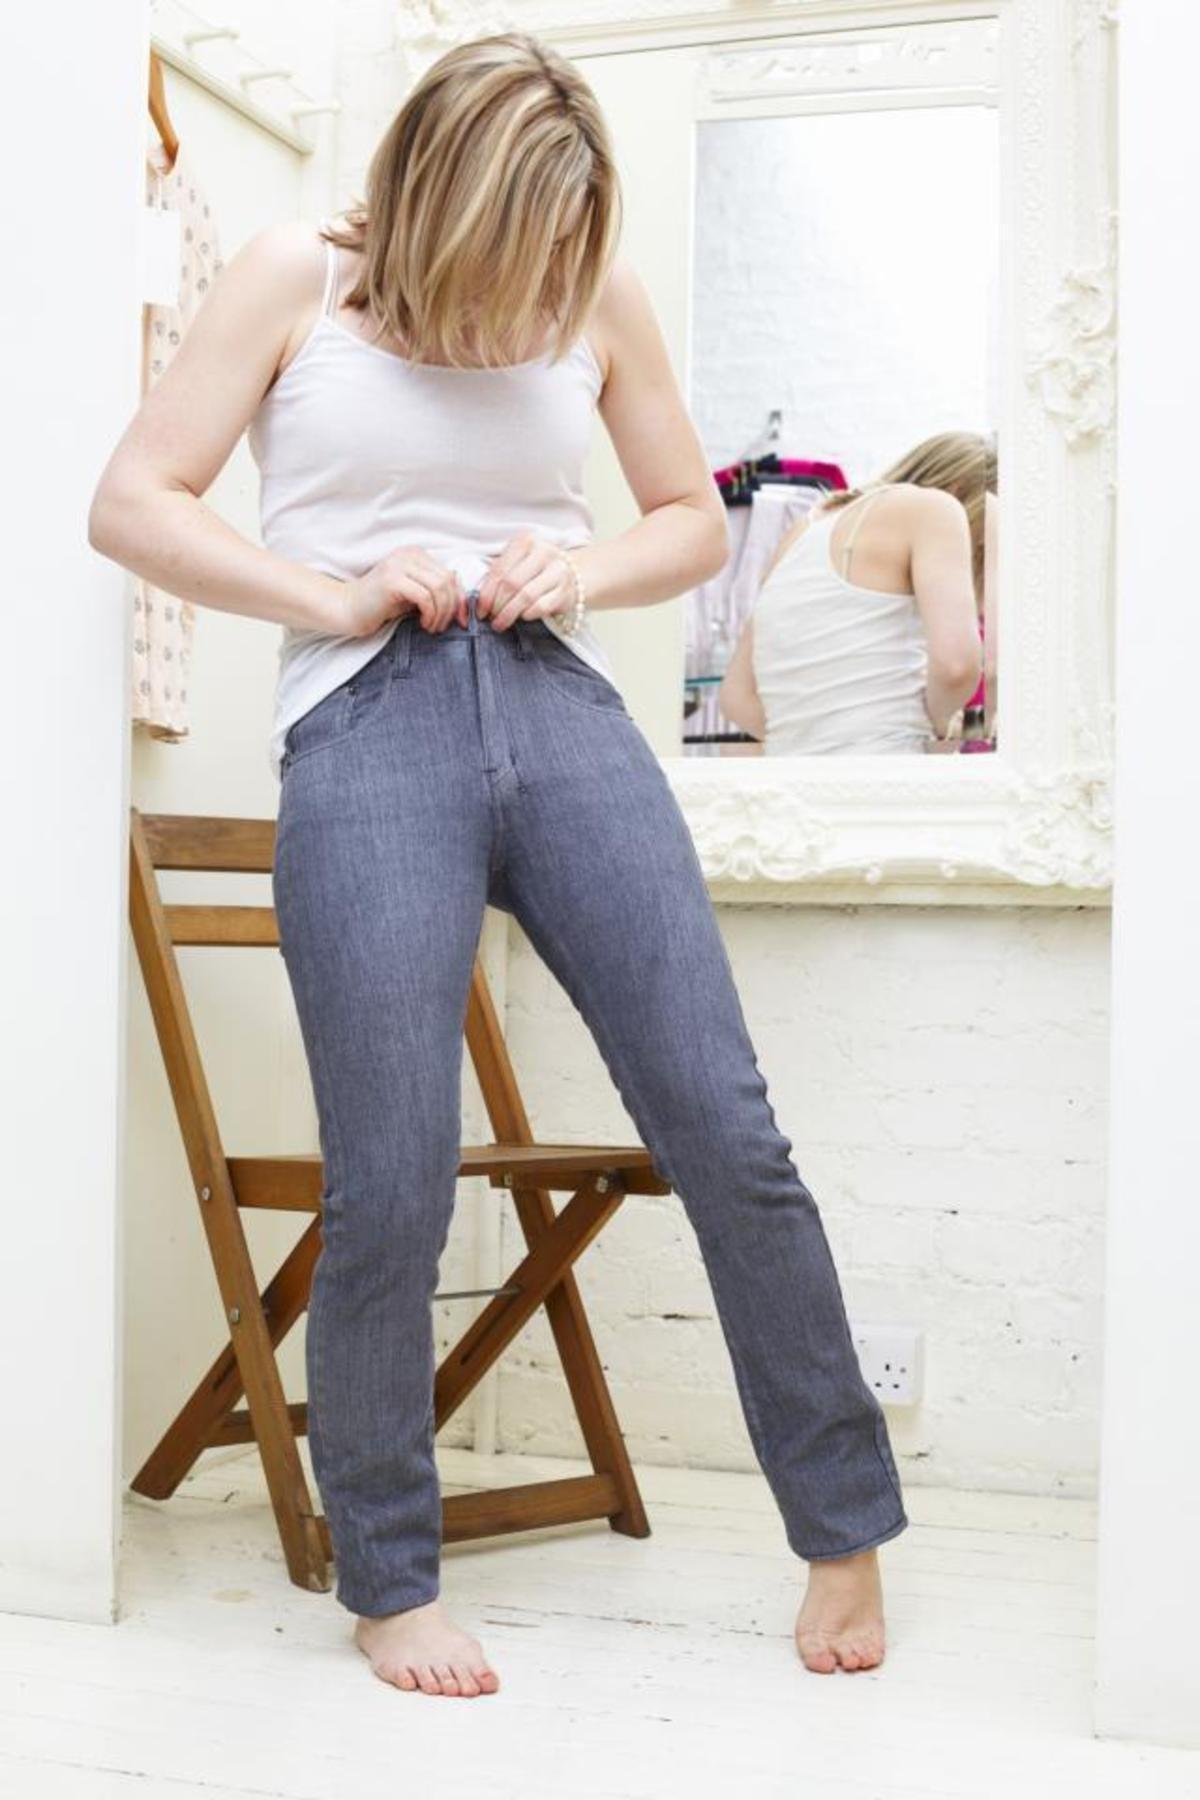 trying-jeans-GettyImages-liam-norris